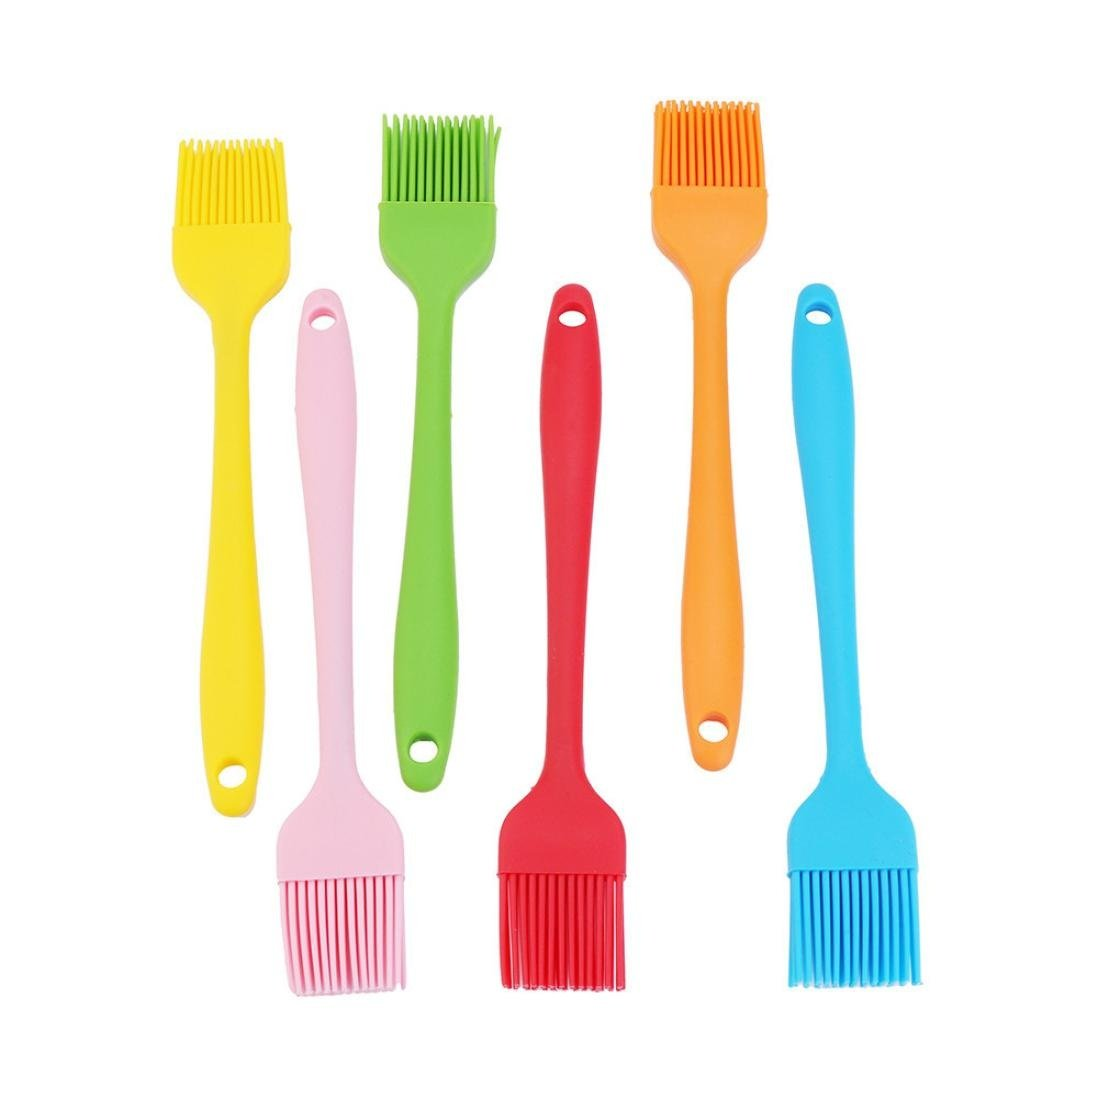 Feccile 6Pcs Kitchen Silicone Brush Bread BBQ Baking DIY Cooking Gadget